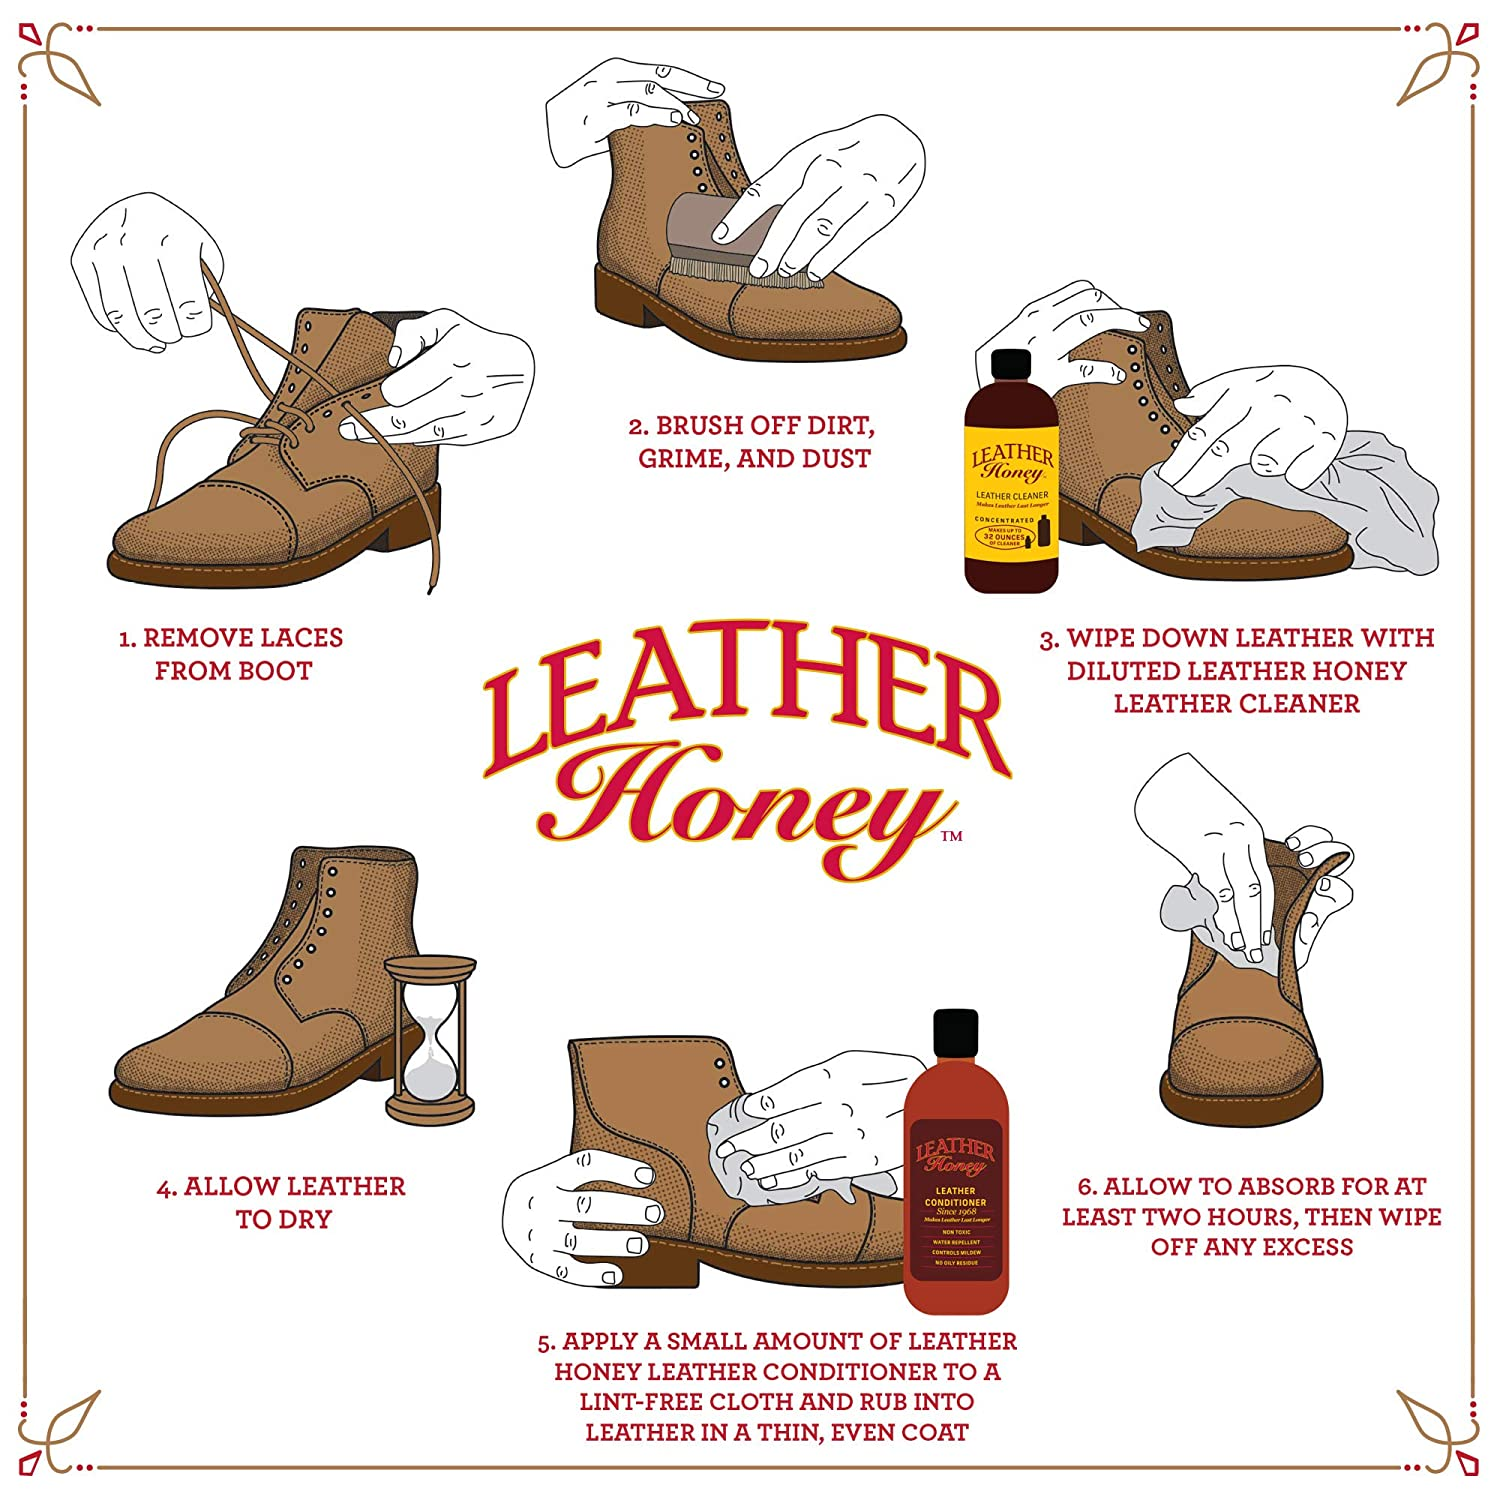 Amazon.com: Leather Honey Leather Conditioner, Best Leather Conditioner Since 1968. For Use on Leather Apparel, Furniture, Auto Interiors, Shoes, ...